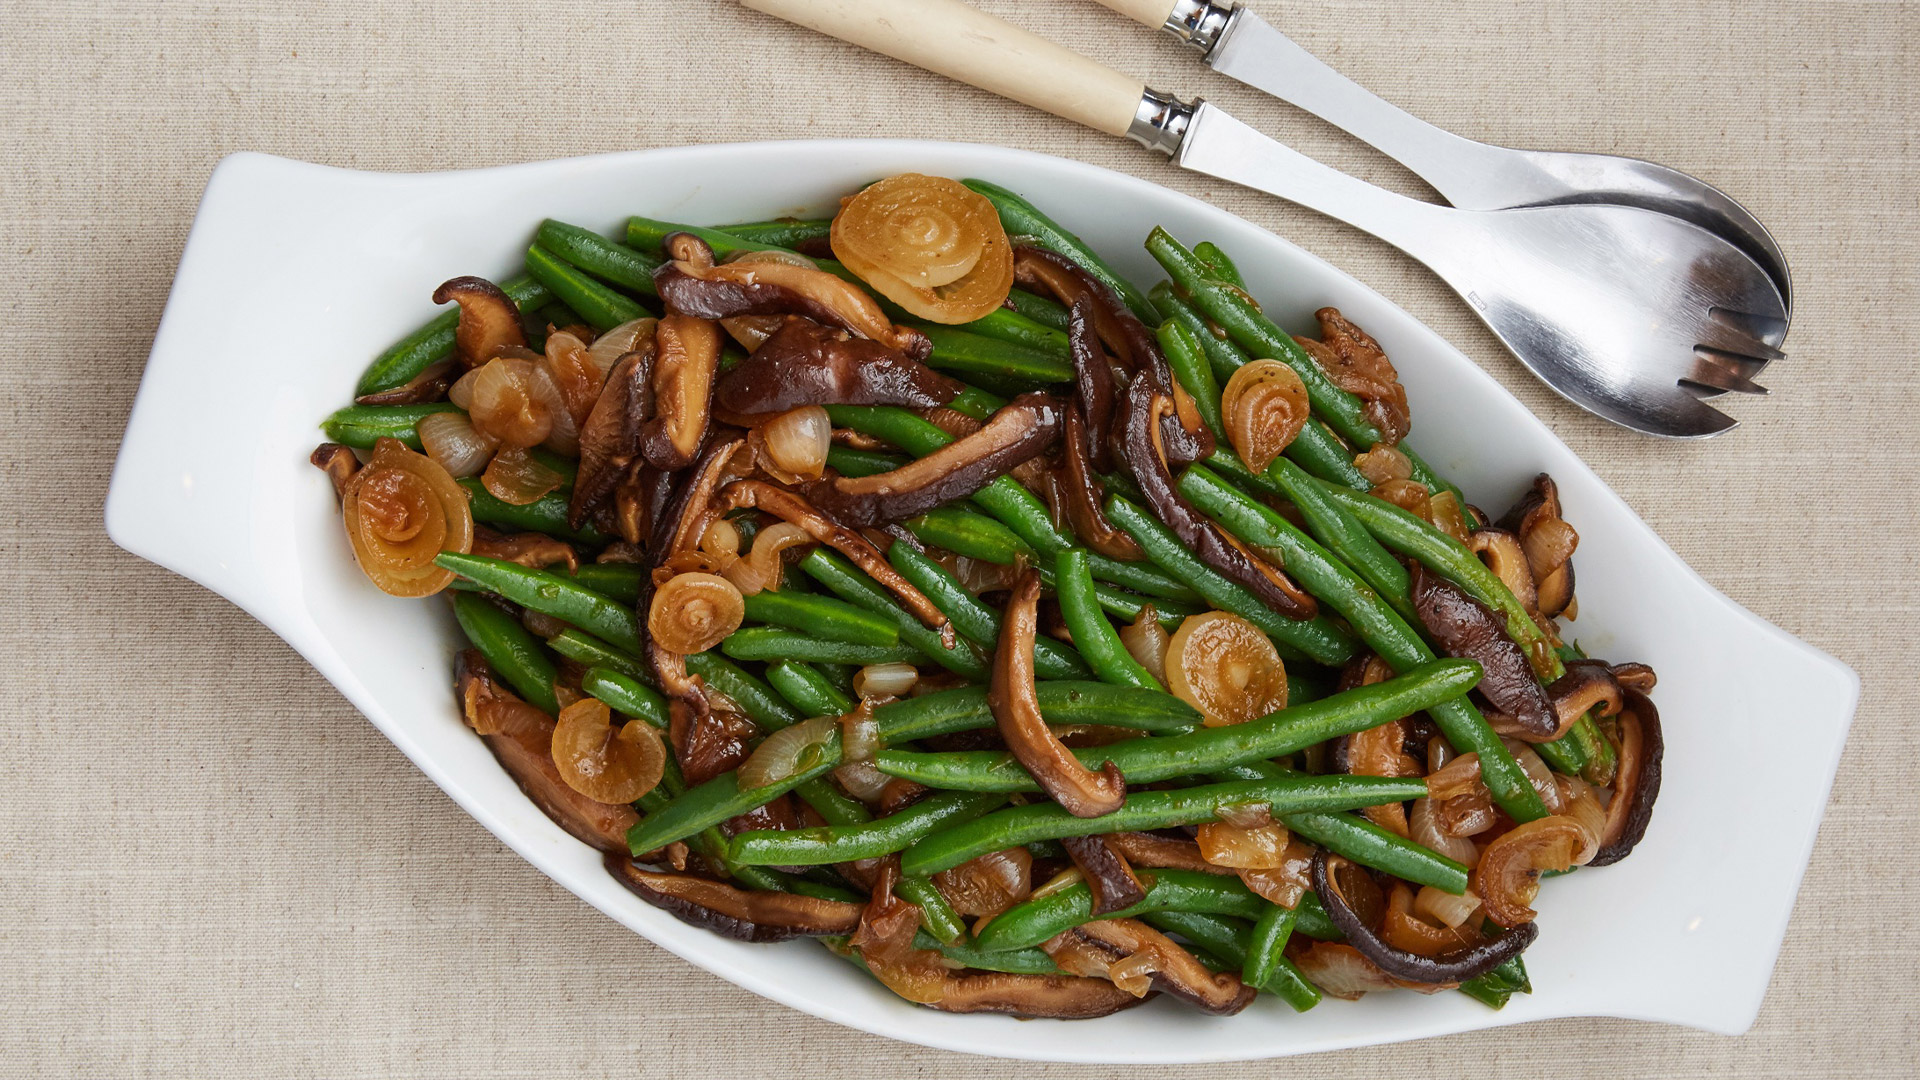 Asian green beans with wild mushrooms and Cipollini onions in a white serving dish and fork and spoon.